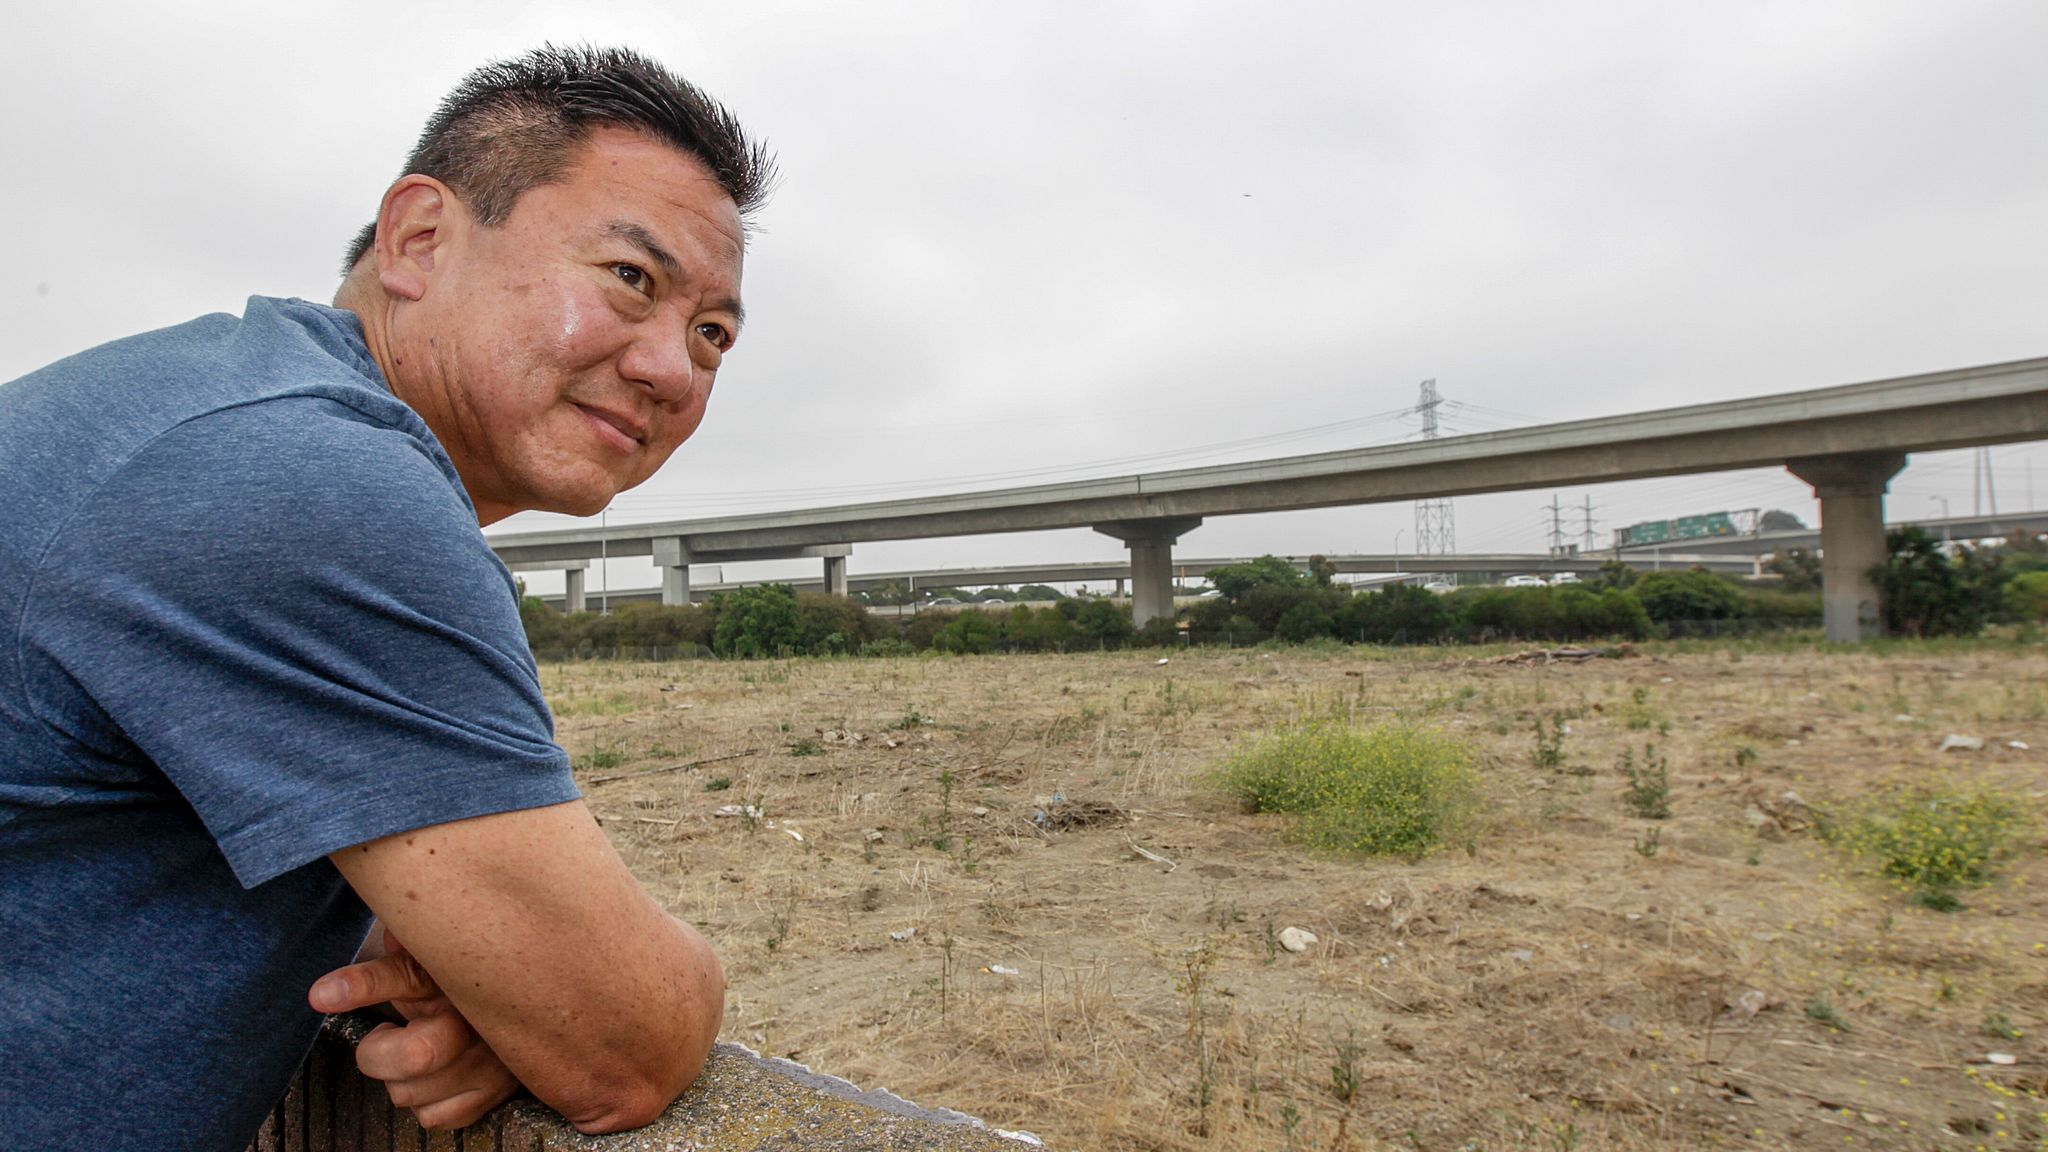 Harbor Gateway resident Craig Kusunoki looks from his backyard wall onto the site of a proposed 15-home subdivision planned near the interchange of the 110 and 91 Freeways. Opponents say future residents will face noise and air pollution from nearby cars and trucks.